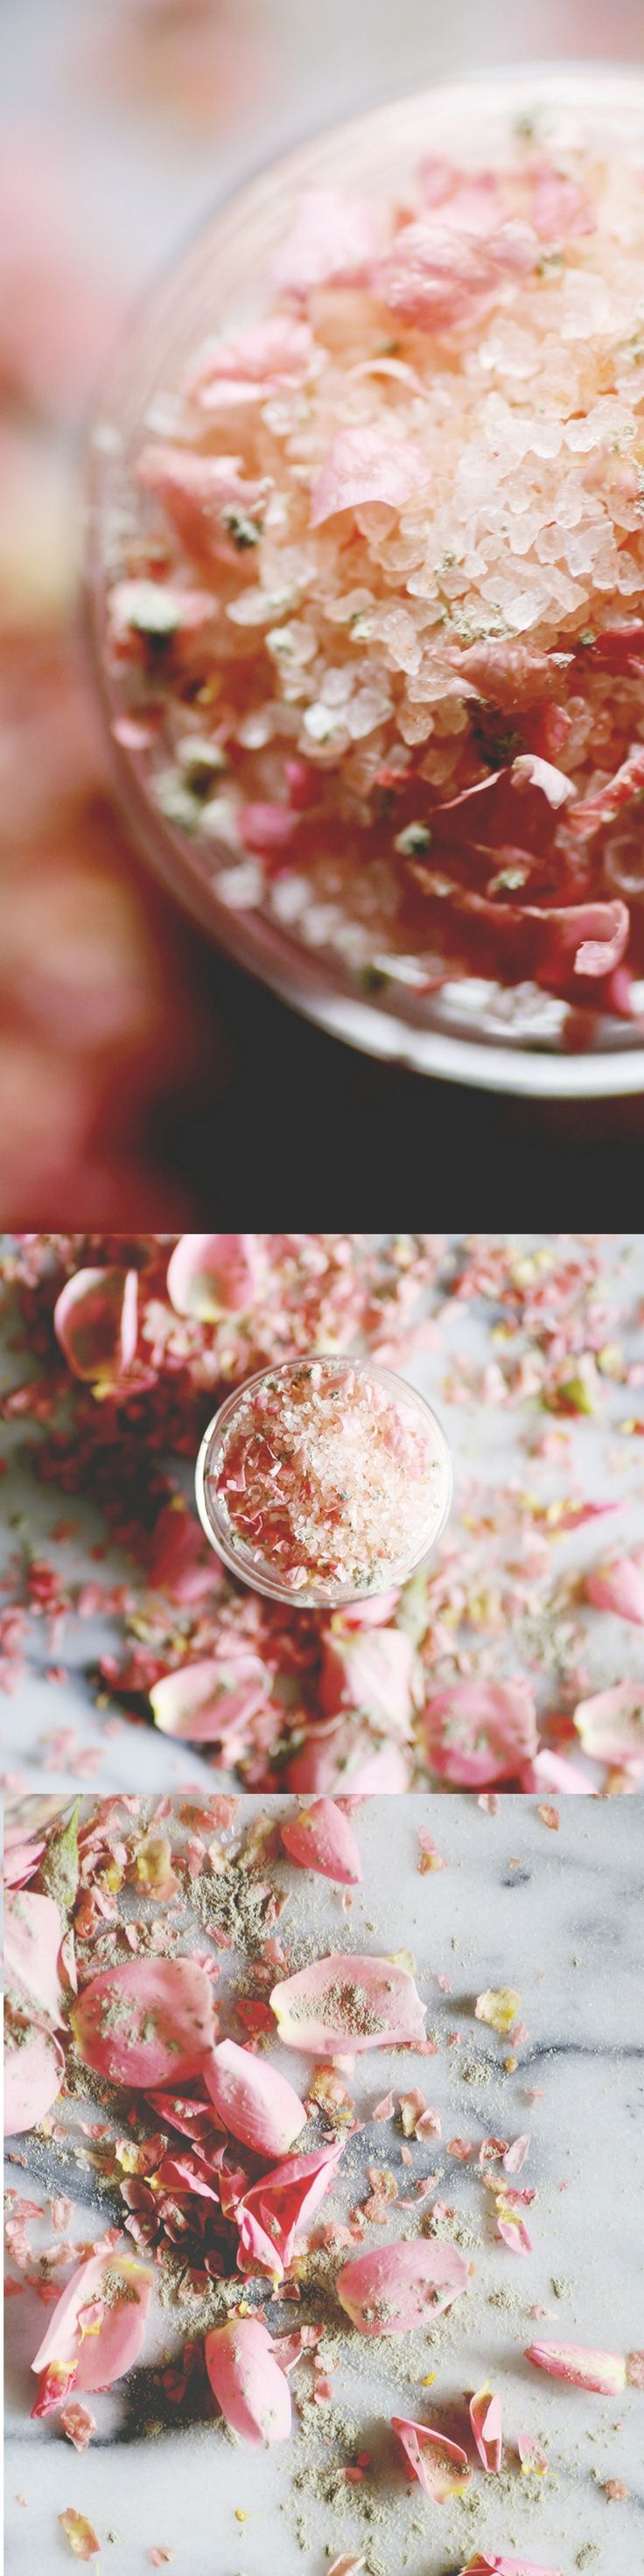 Feminine and pretty, this floral salt soak smells like roses and has a beautiful soft pink color thanks to the Himalayan salts. I love this particular DIY salt soak recipe because it takes about five minutes to create and makes a great gift.